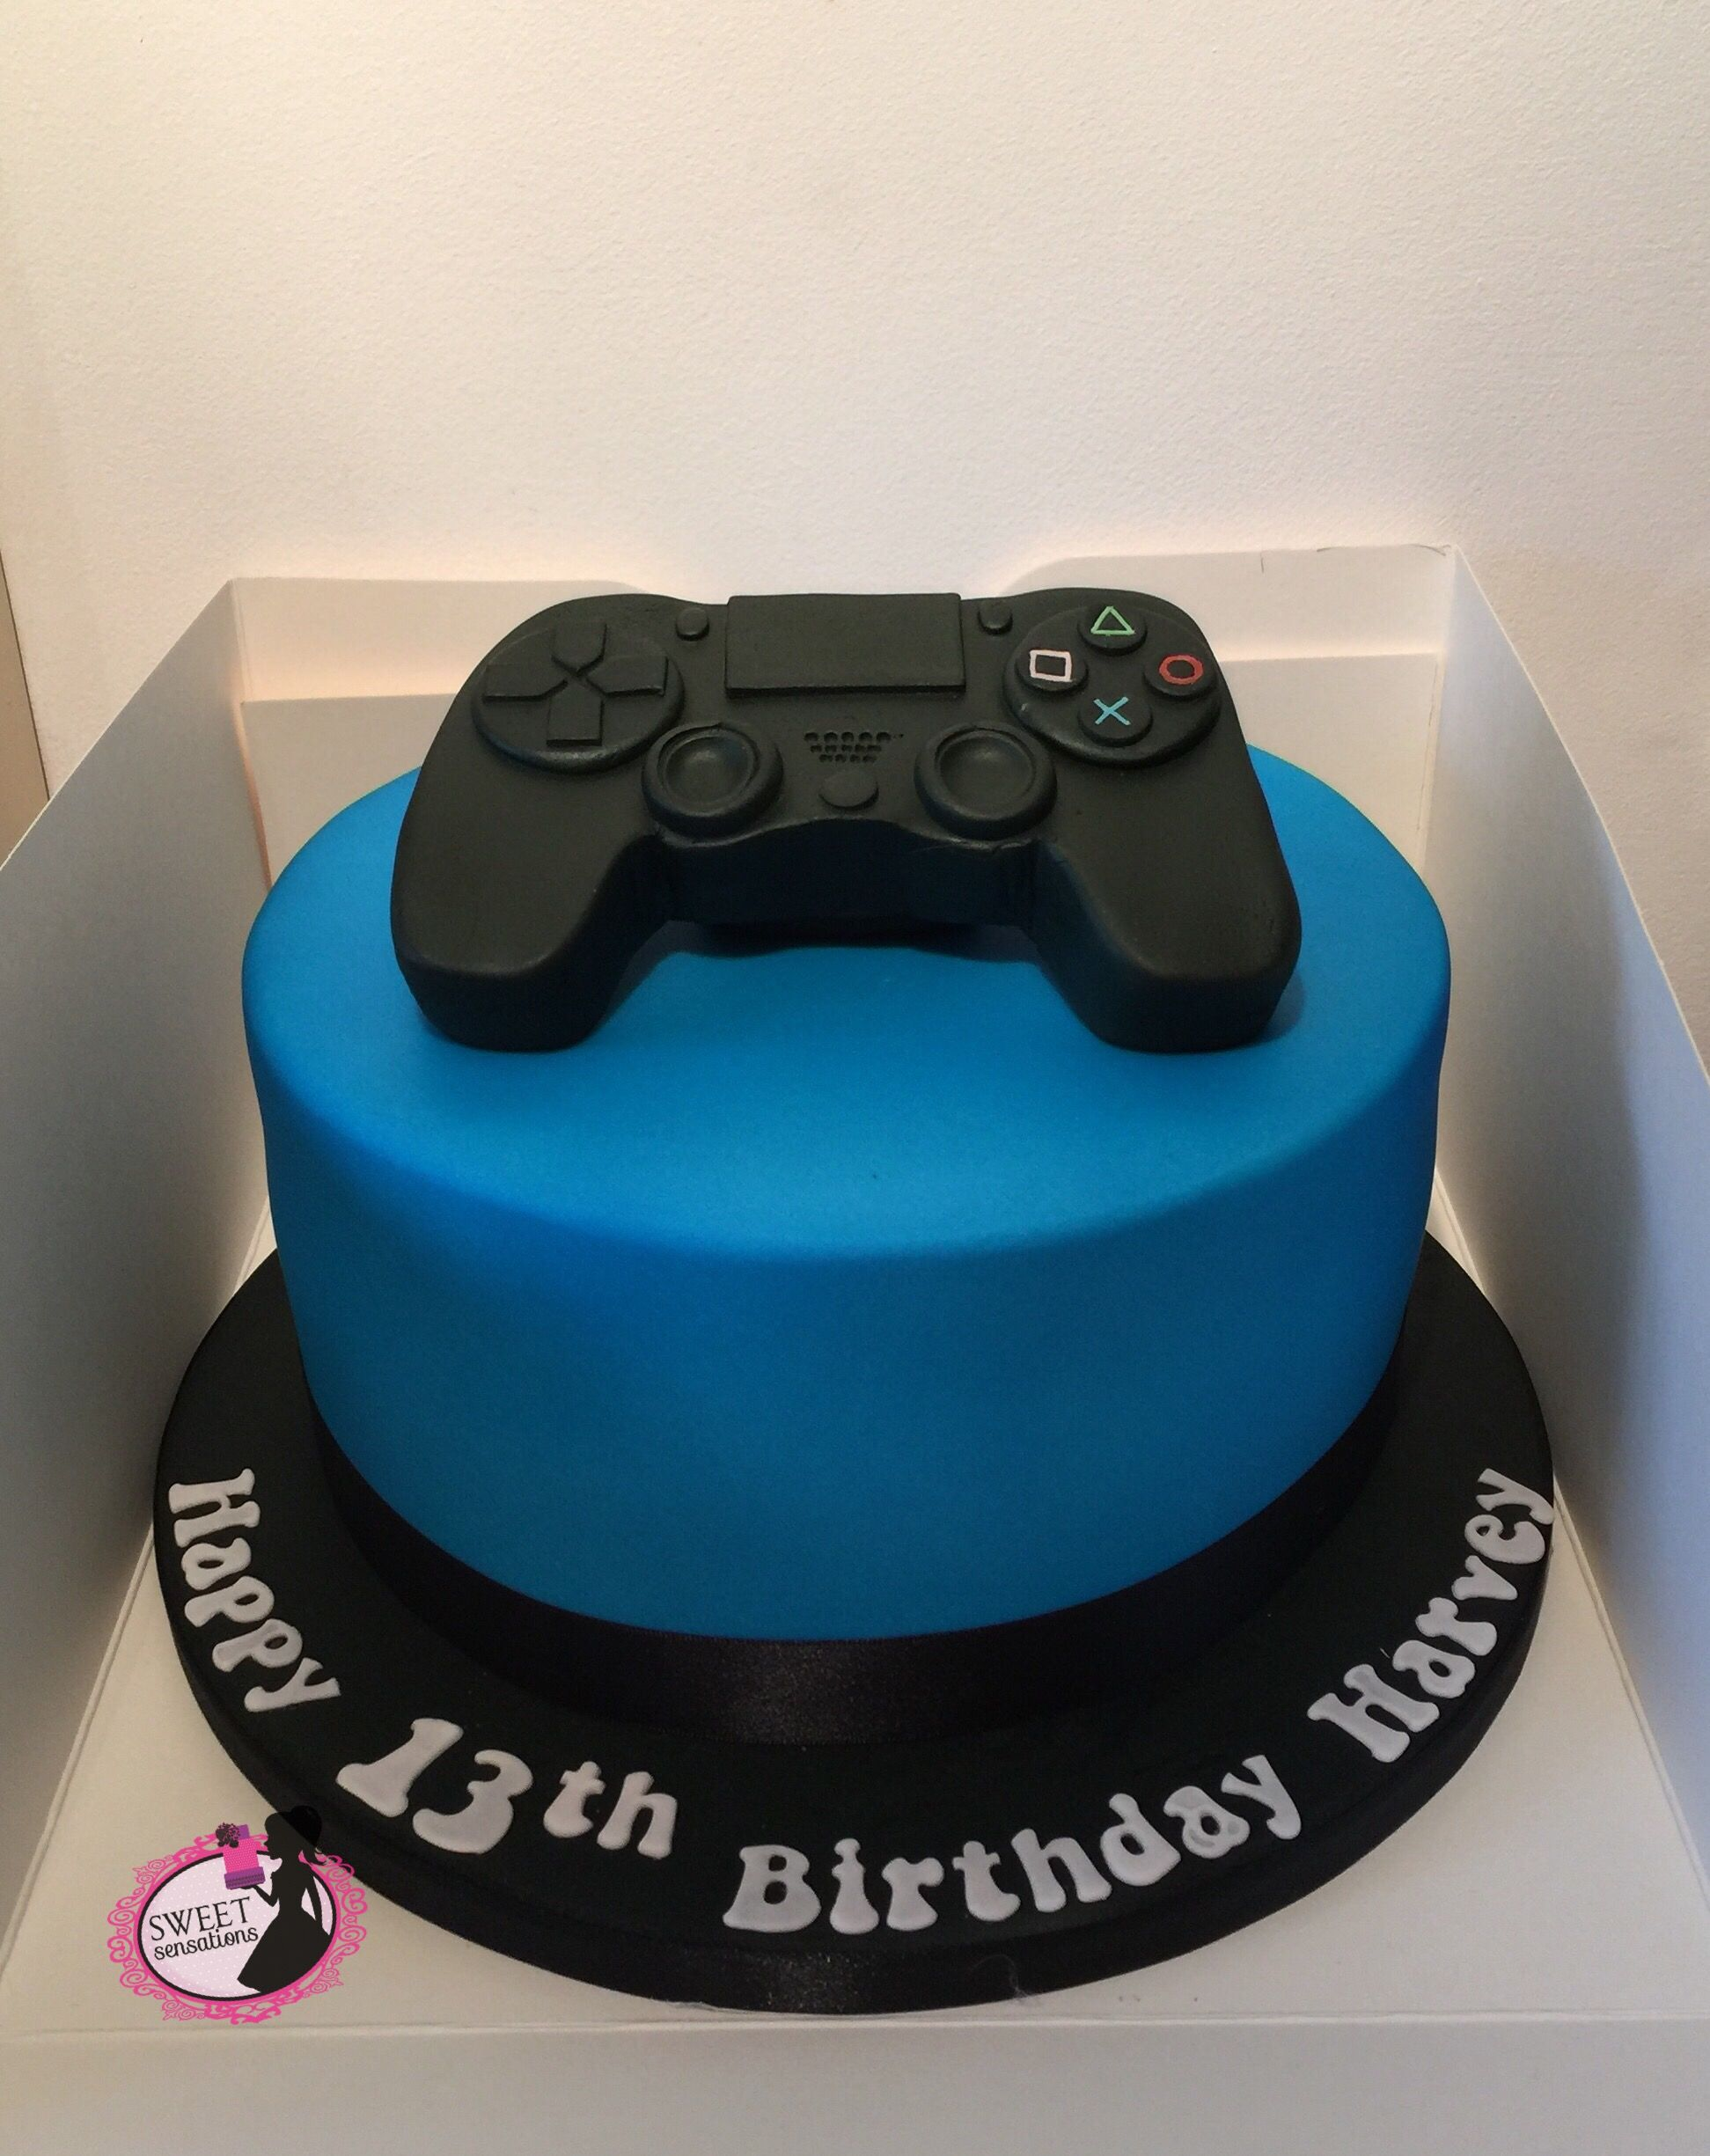 Sensational Ps4 Cake Cool Birthday Cakes New Birthday Cake Playstation Cake Funny Birthday Cards Online Fluifree Goldxyz